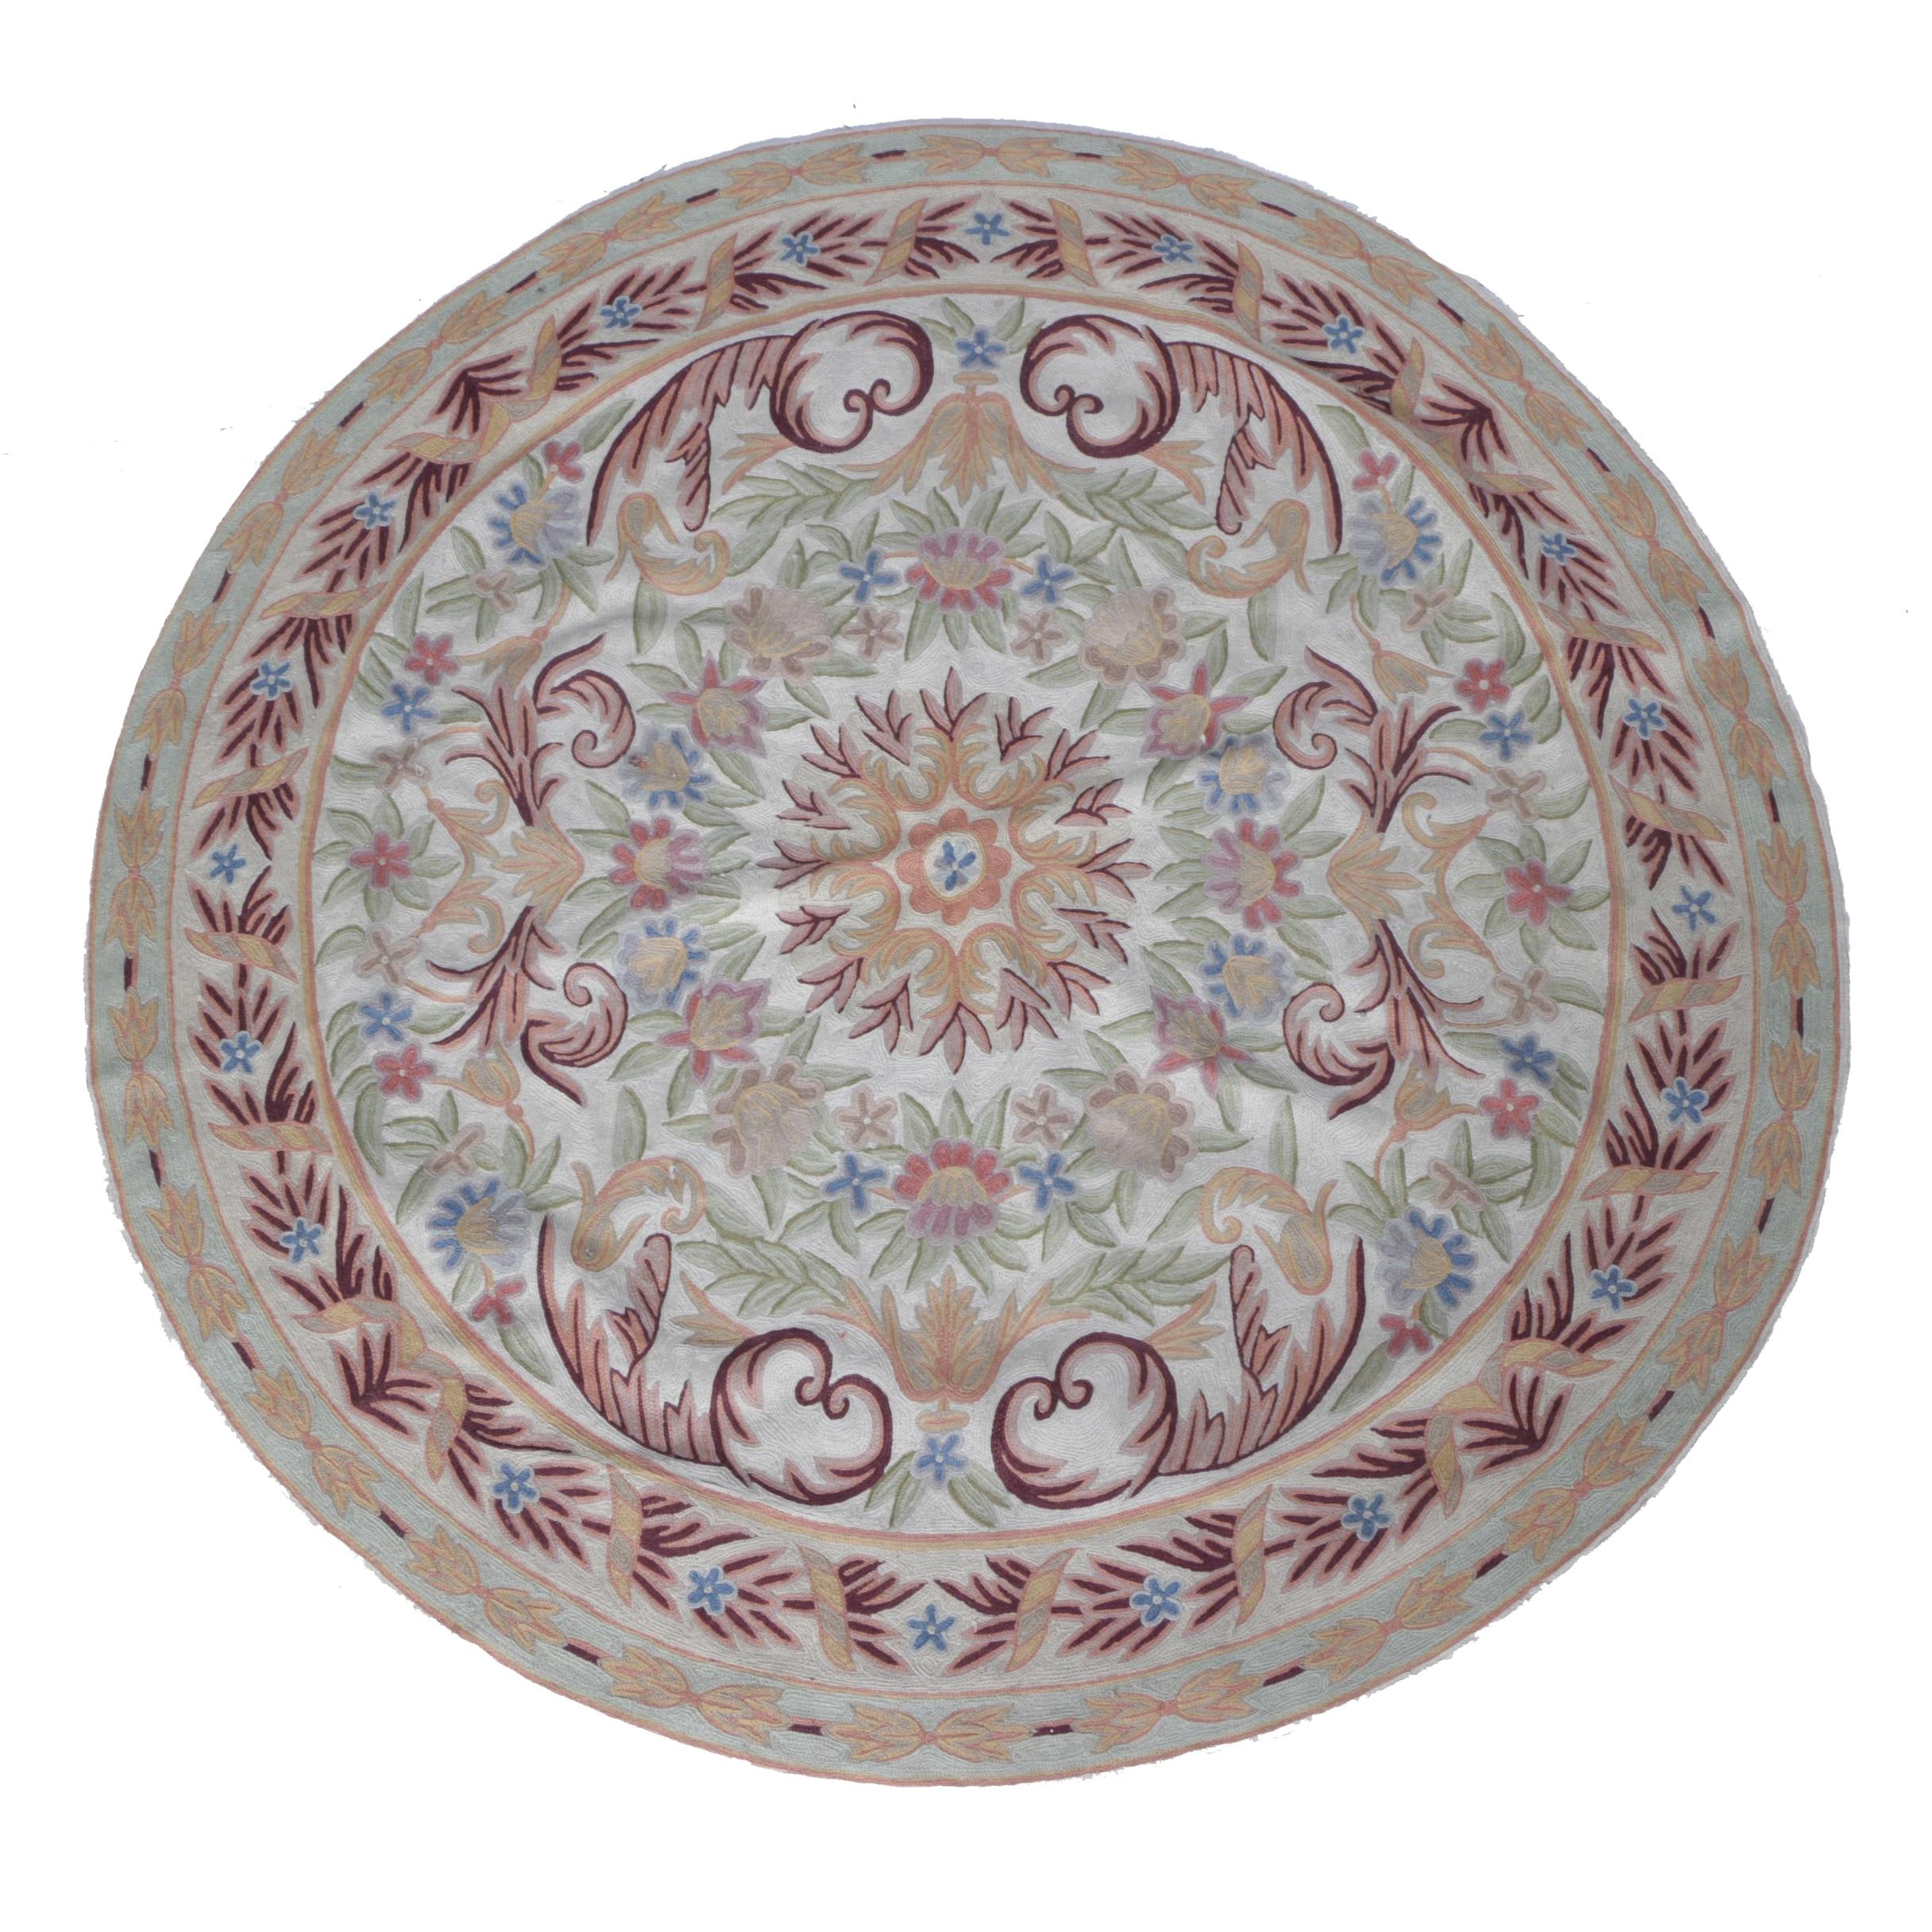 Handwoven Round Floral Accent Rug